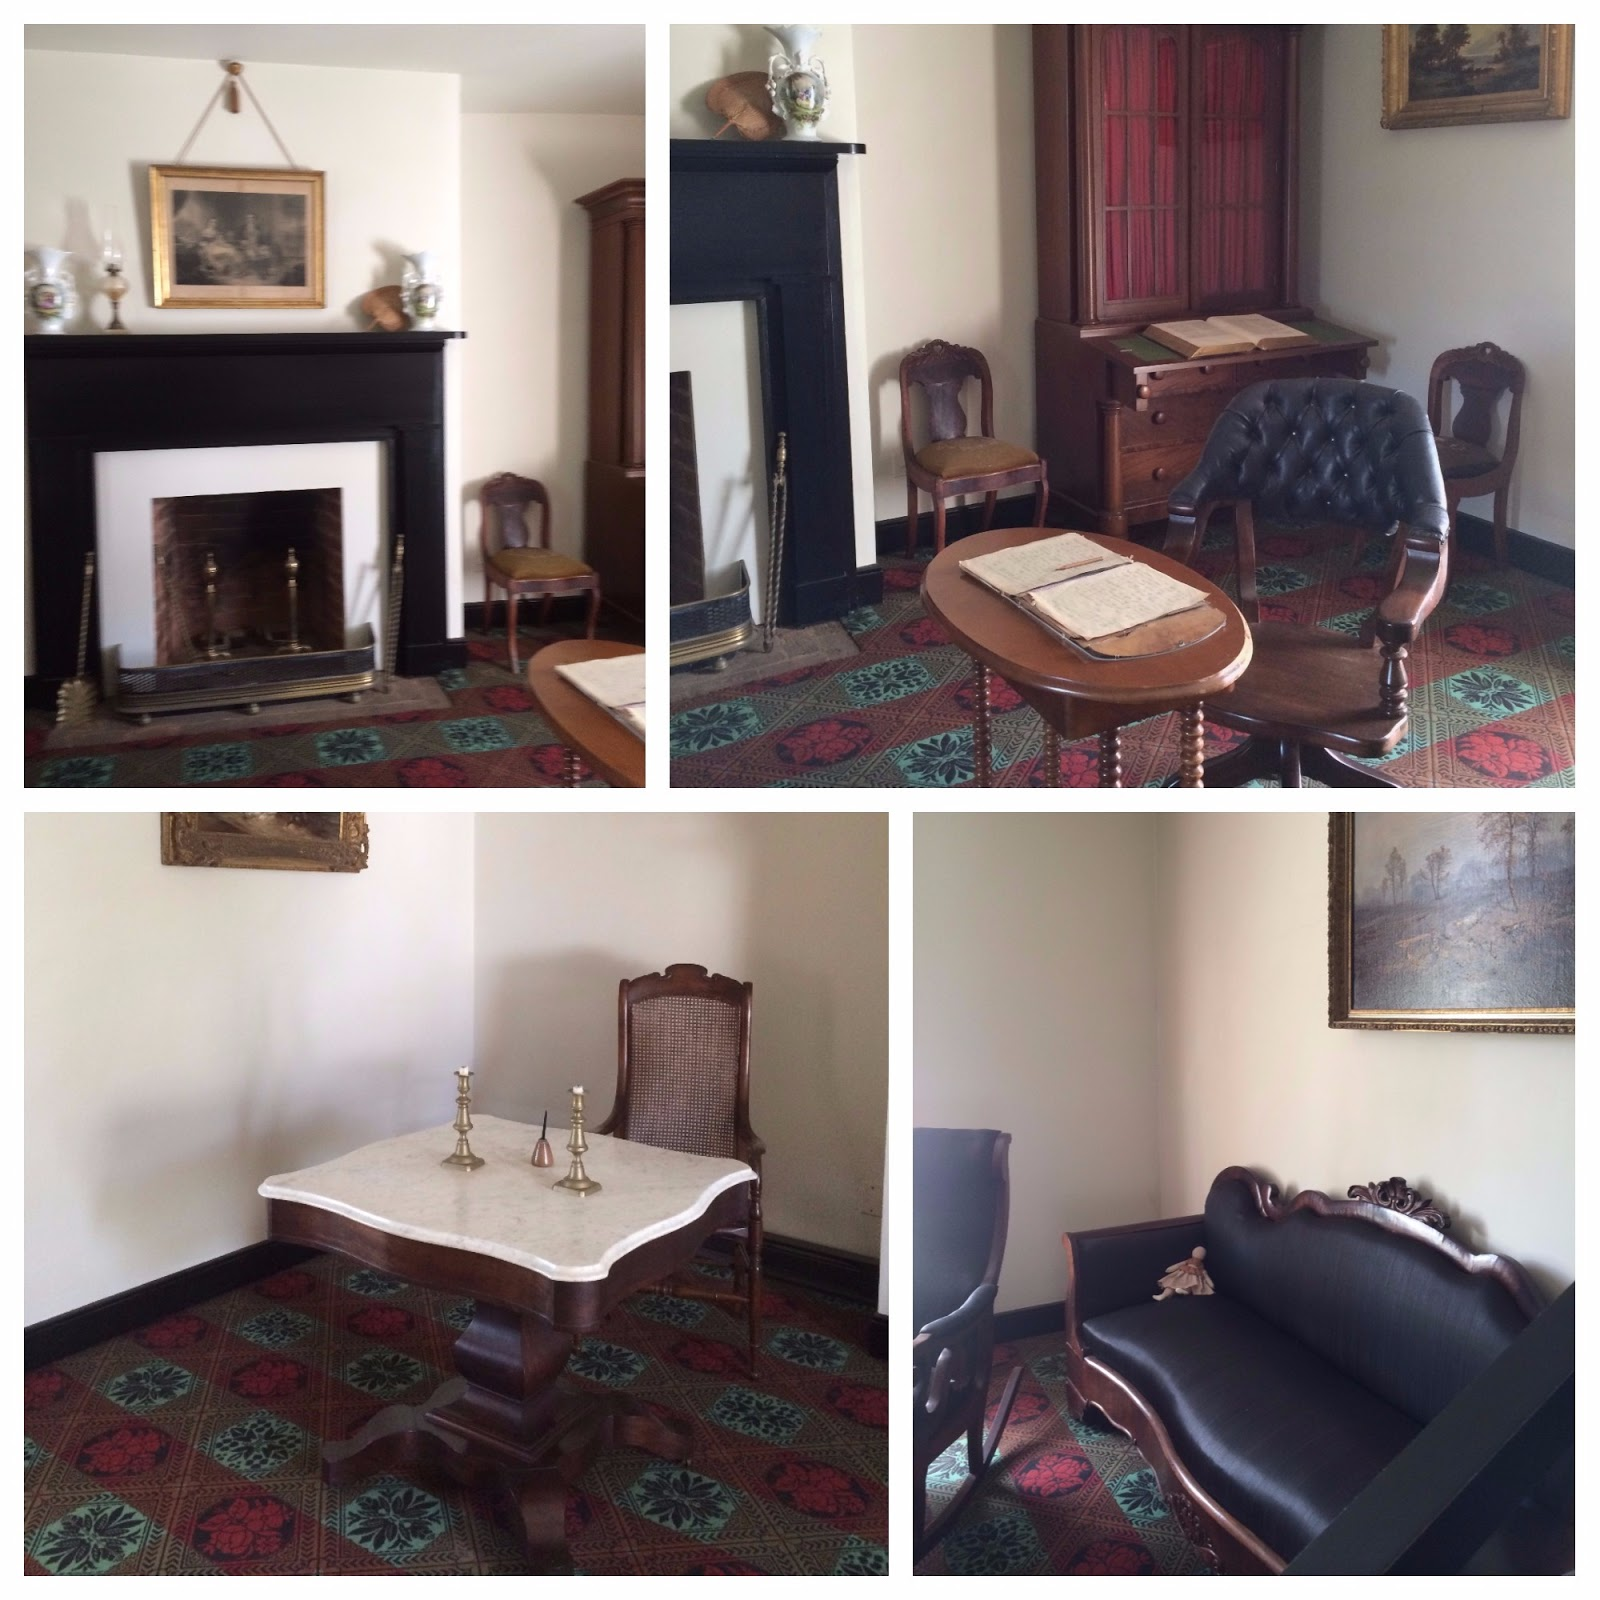 The Parlor Where Two Generals Met